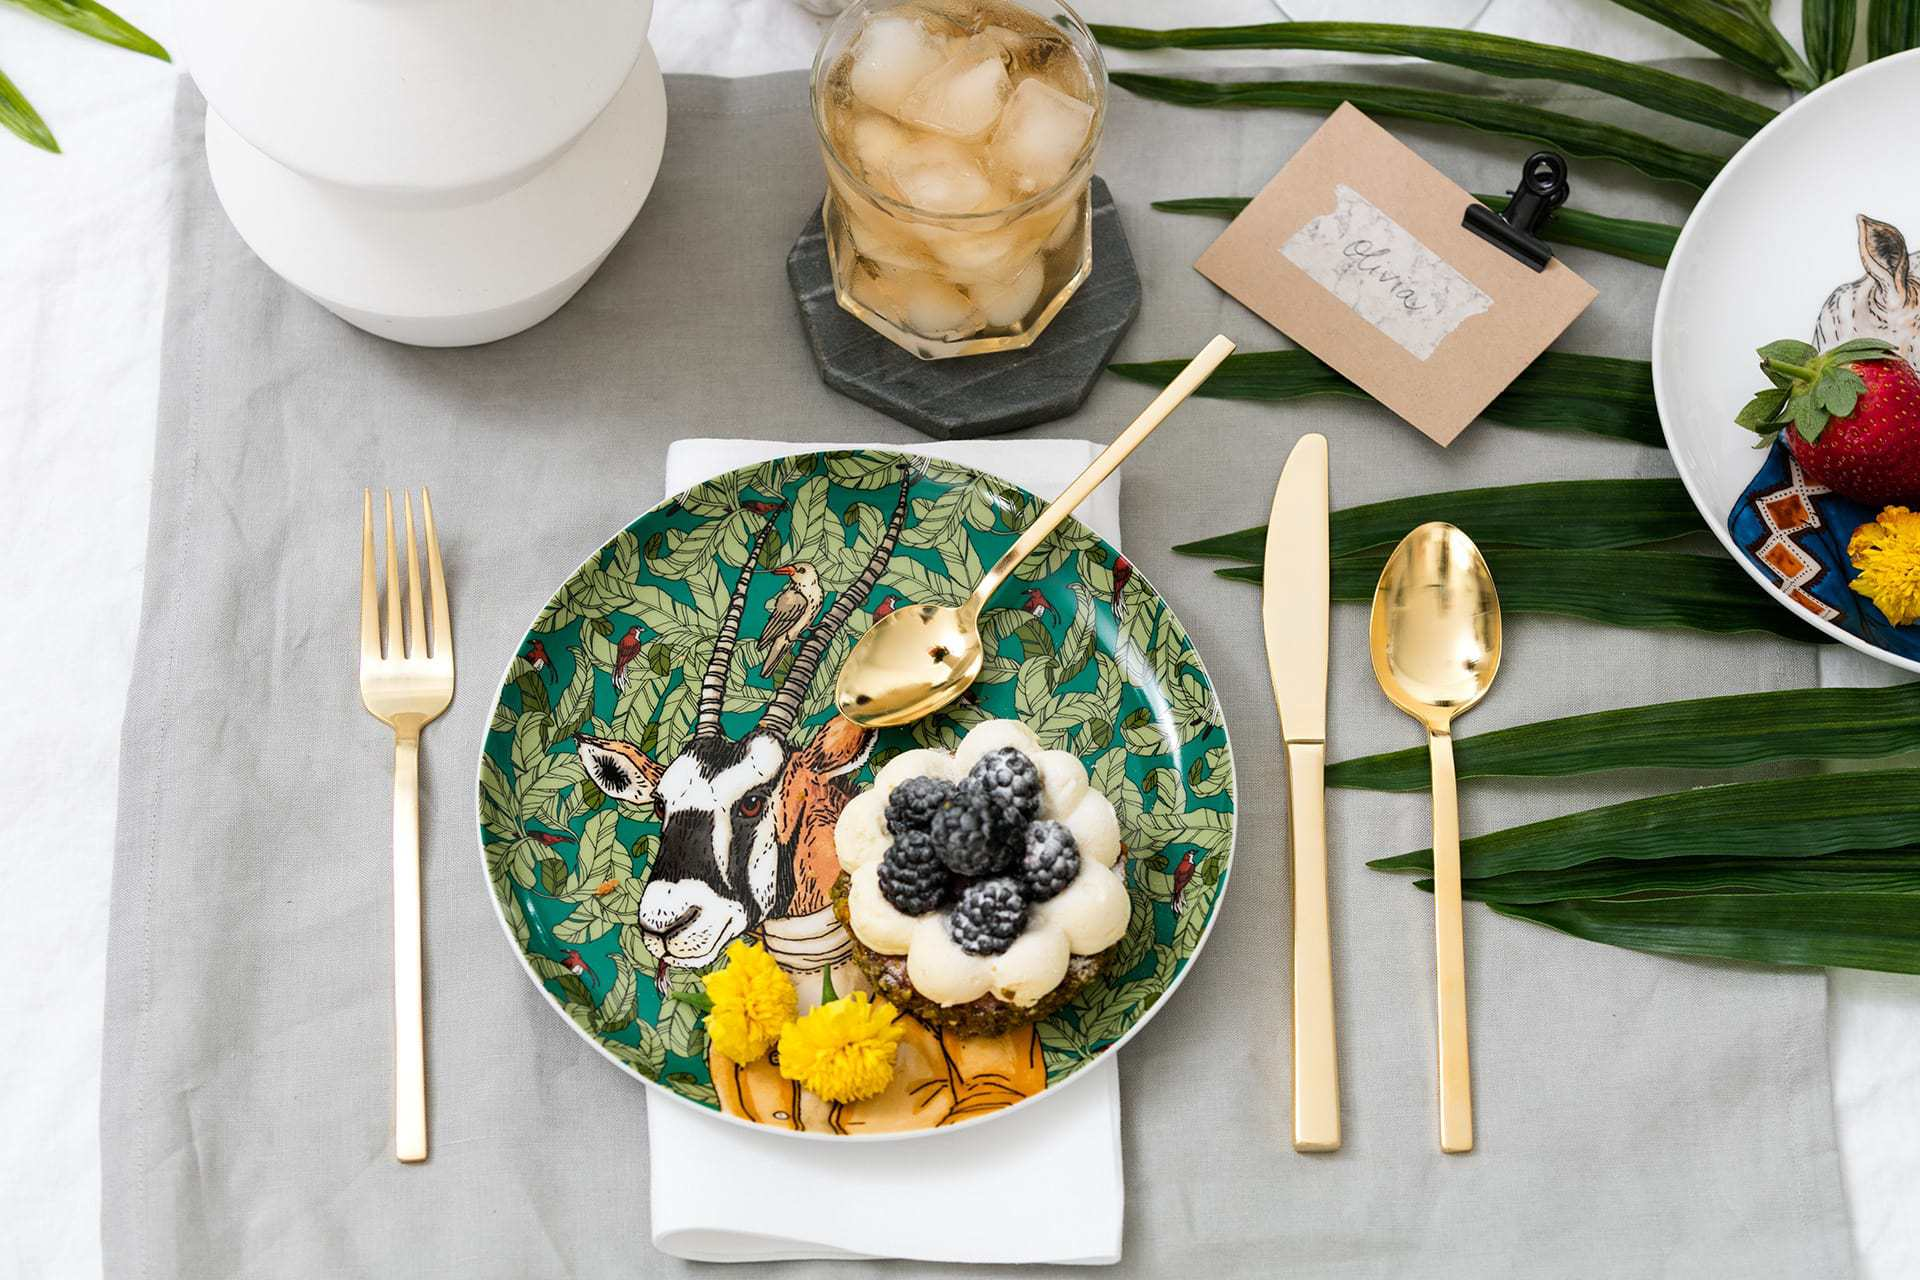 west elm goat plate with gold cutlery set and palm leaf on table